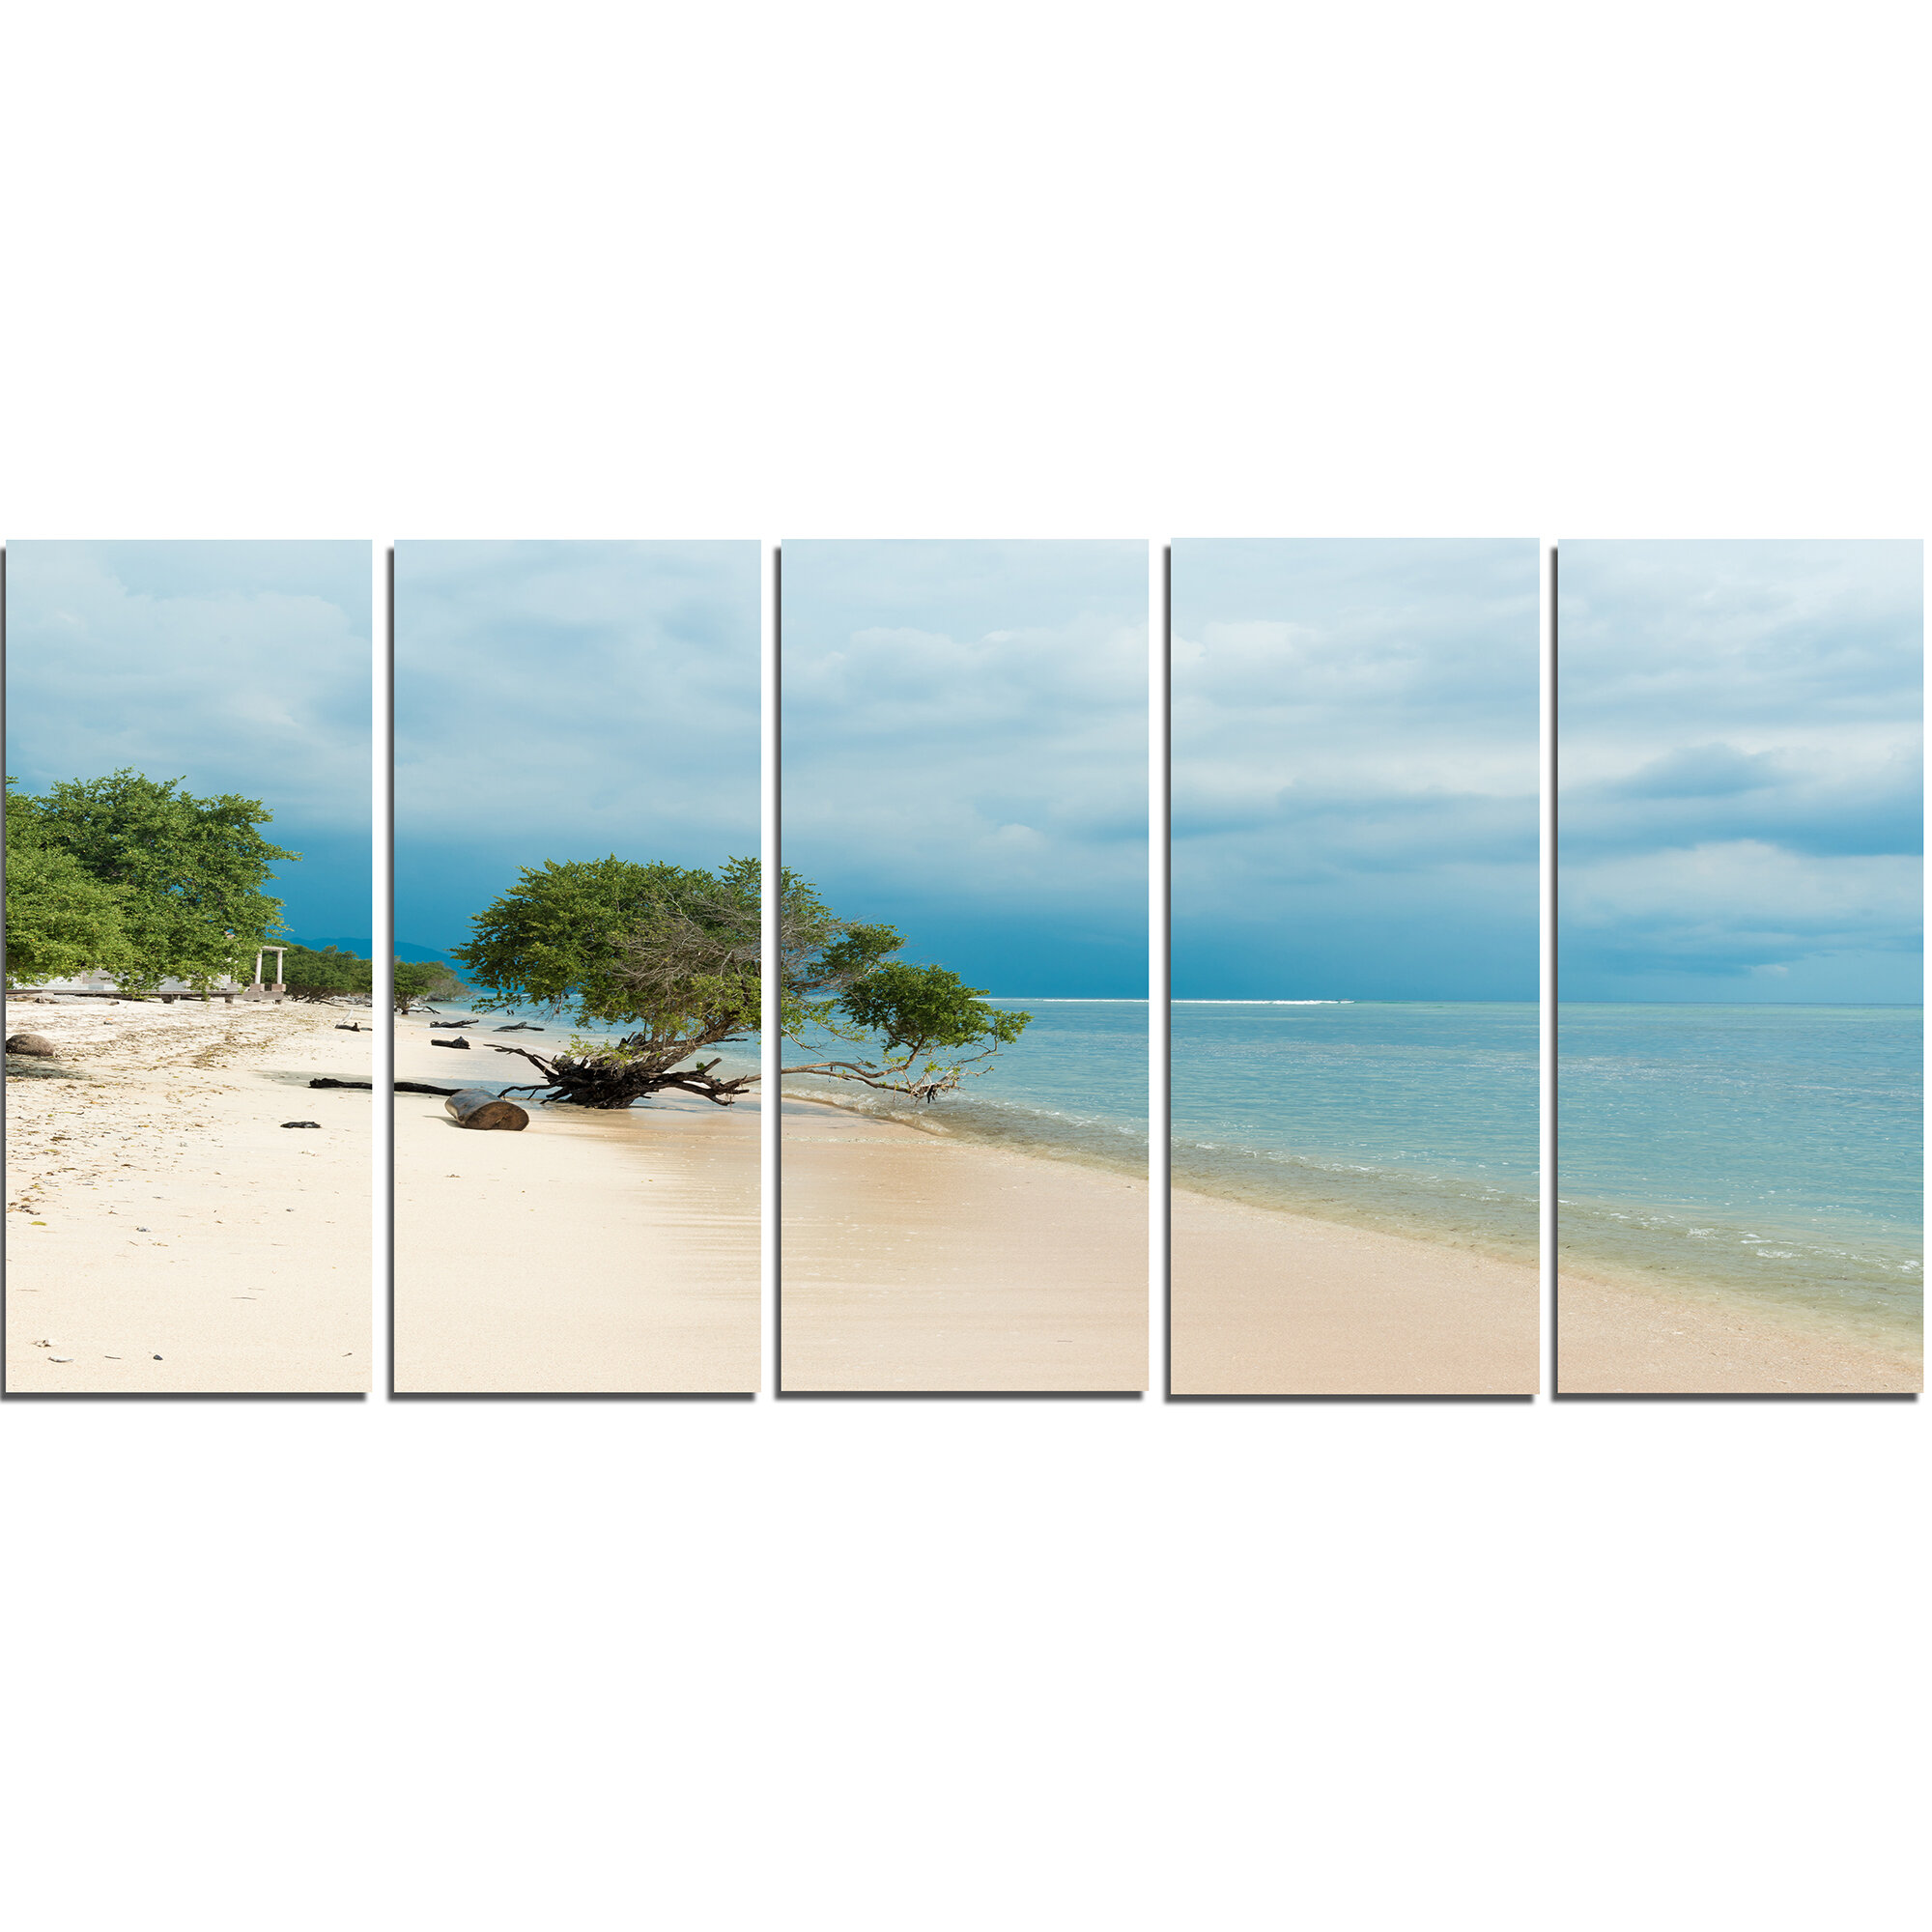 Designart Beautiful Coastline In Indonesia 5 Piece Wall Art On Wrapped Canvas Set Wayfair